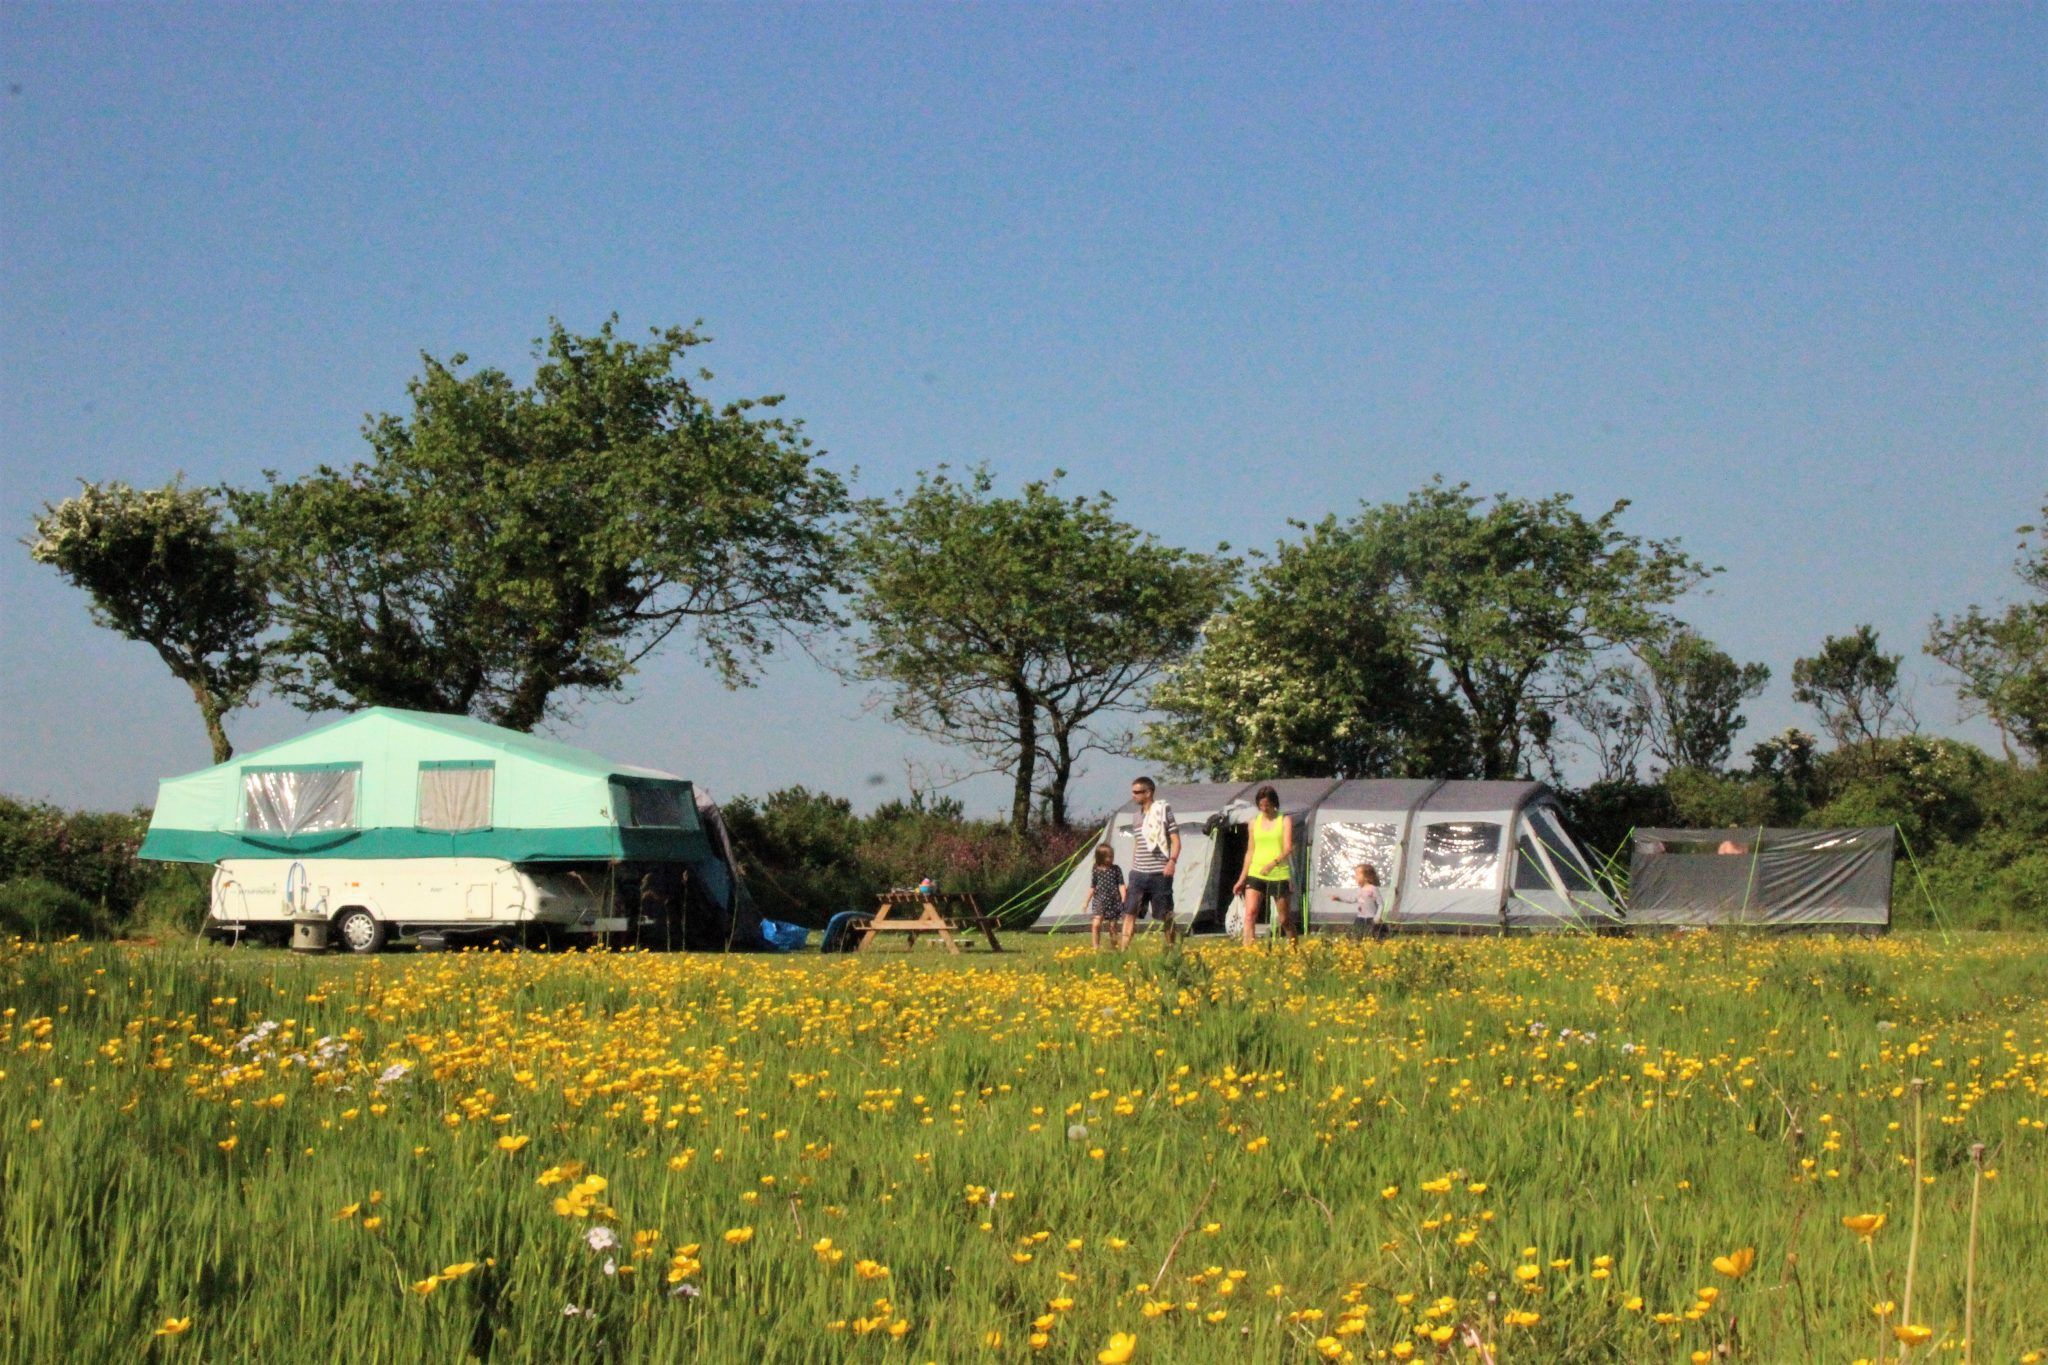 Tents, trailer tents, campervans, caravans and motorhomes - we've welcomed all sorts!